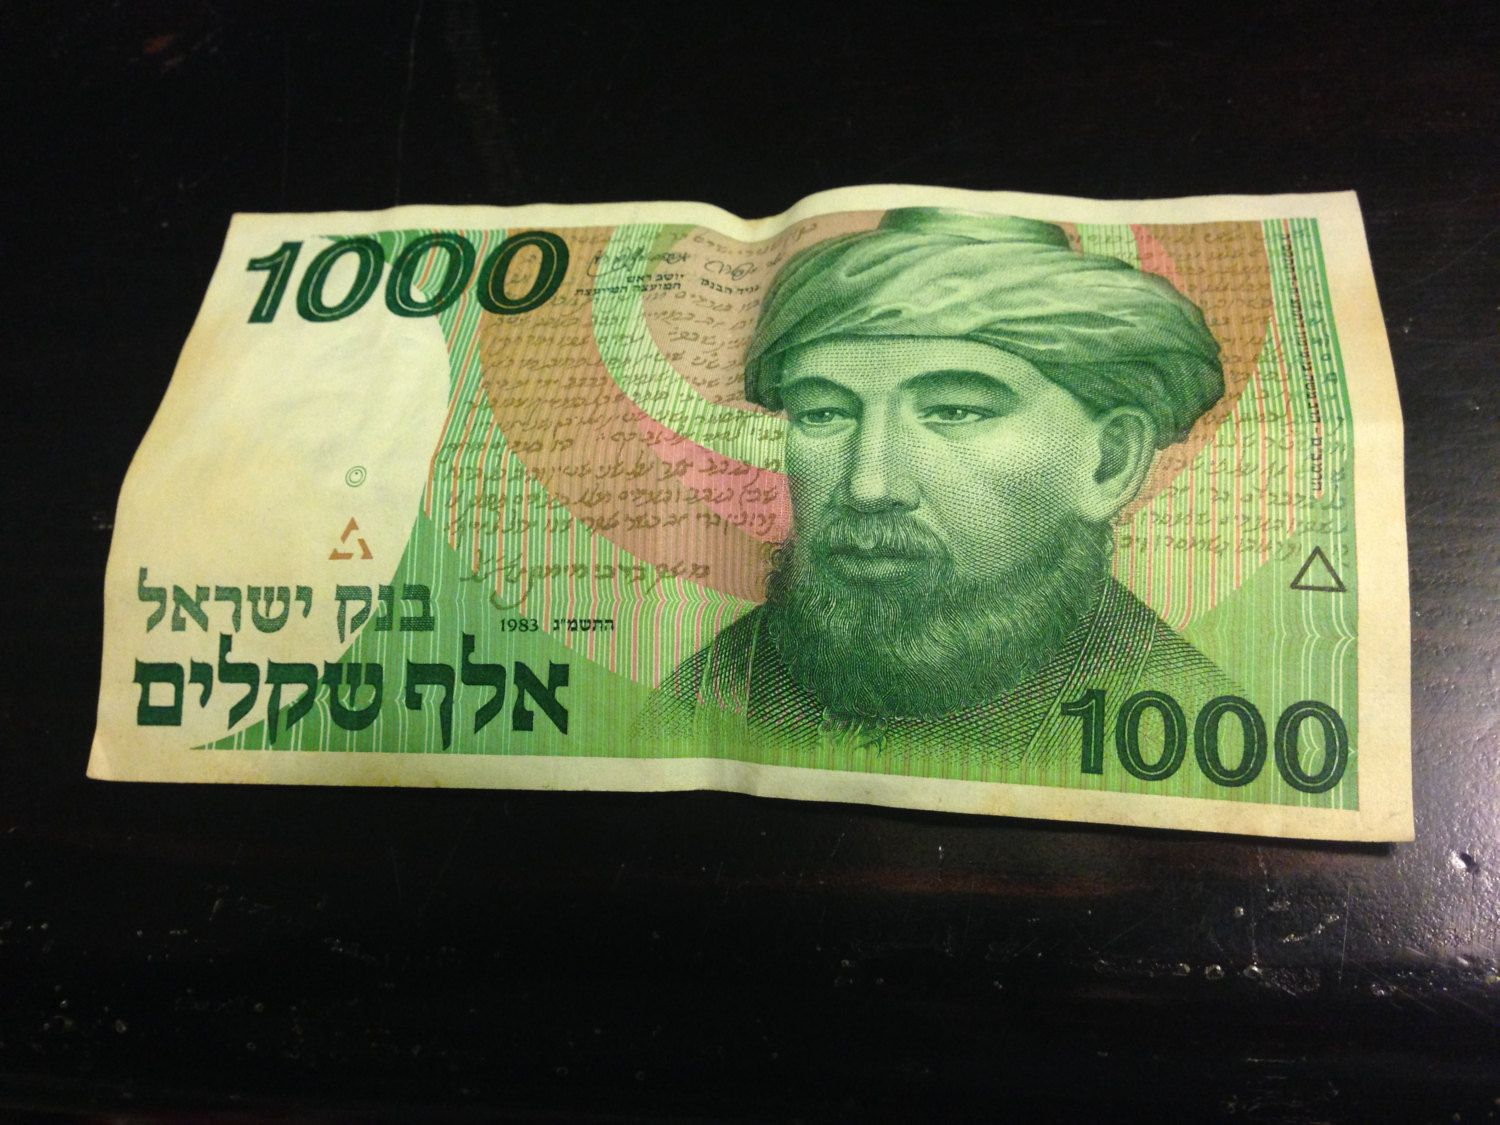 Israel 1000 Sheqalim Shekel Banknote 1983 By Collectorstation On Etsy